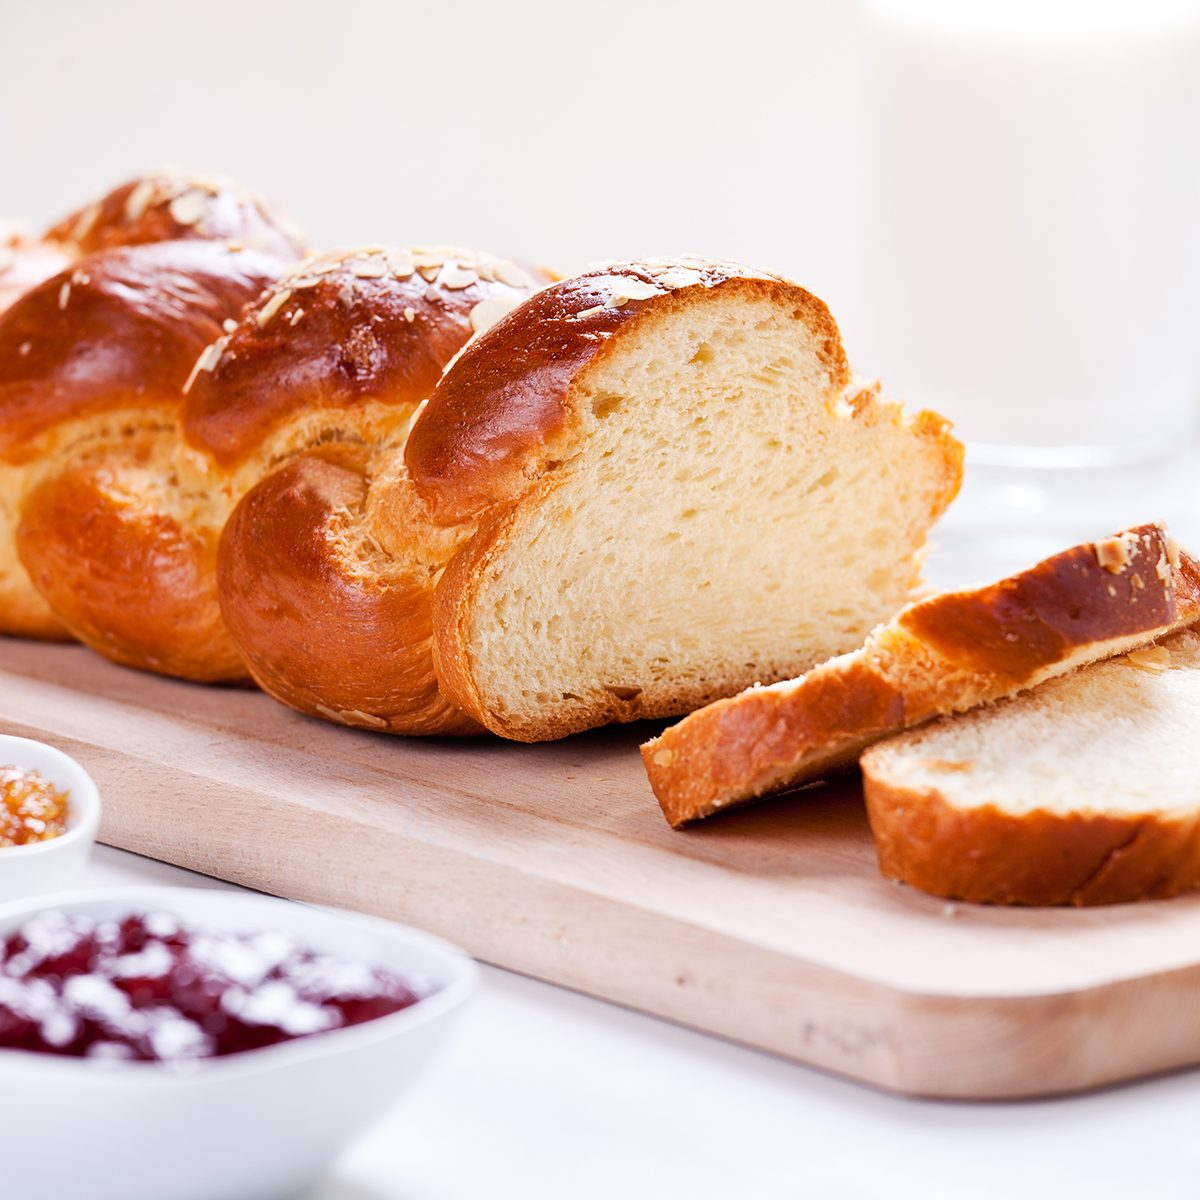 Homemade Traditonal Greek Brioche With Marmalade